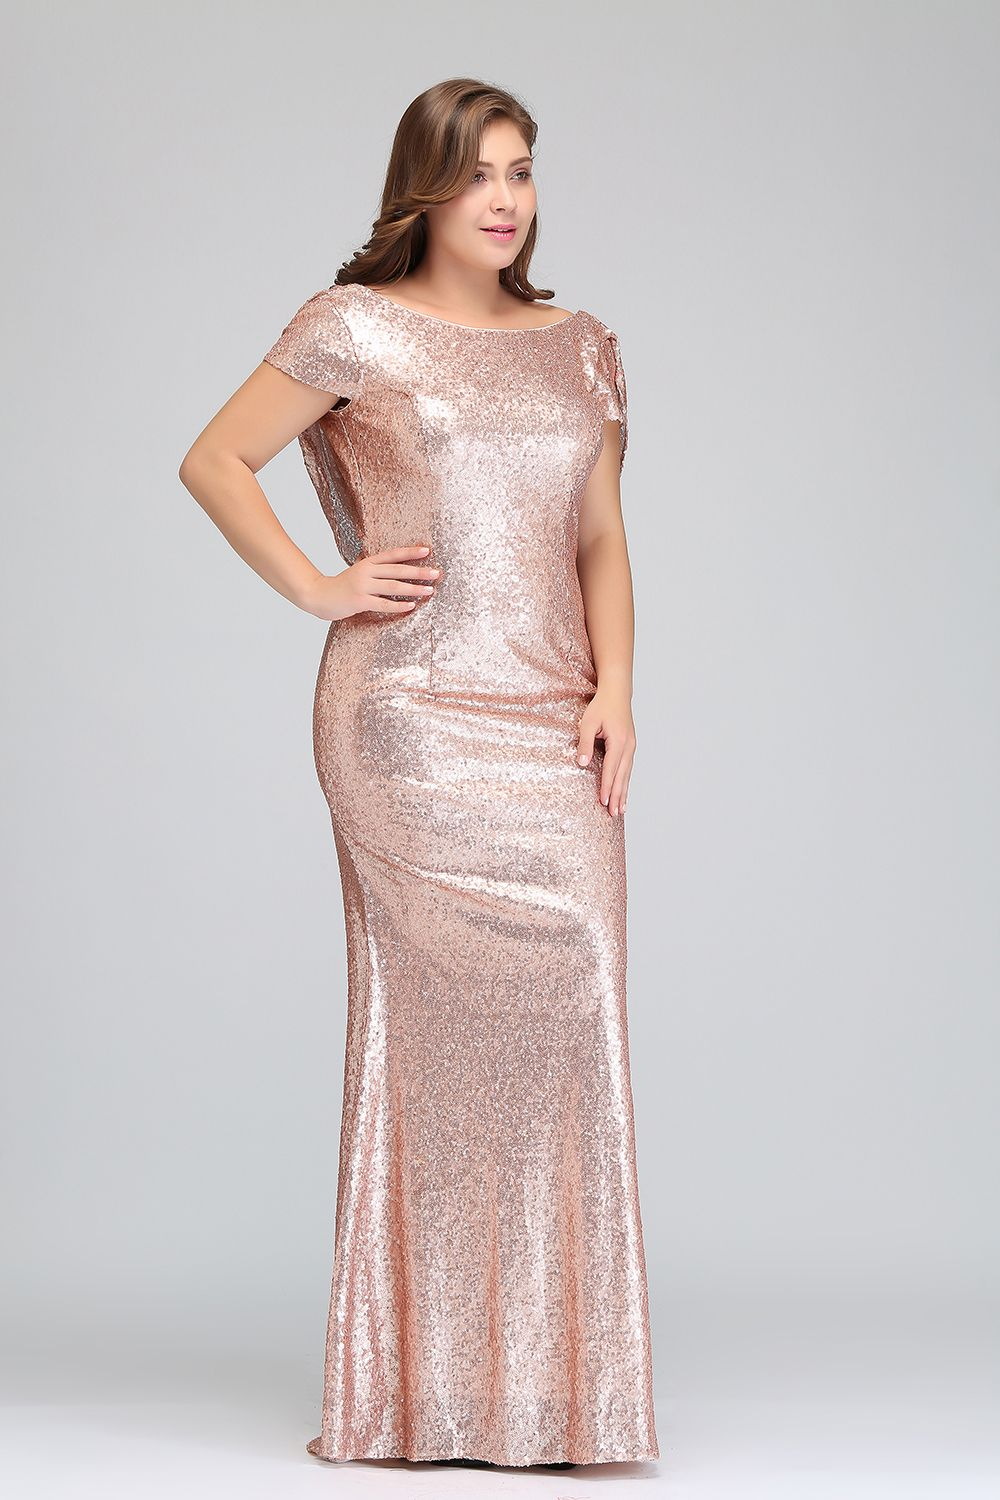 Pp89 Plus Size Rose Gold Sequin Evening Gowns Inexpensive Wedding Dresses Bridesmaid Dresses Plus Size Sequin Bridesmaid Dresses [ 1500 x 1000 Pixel ]